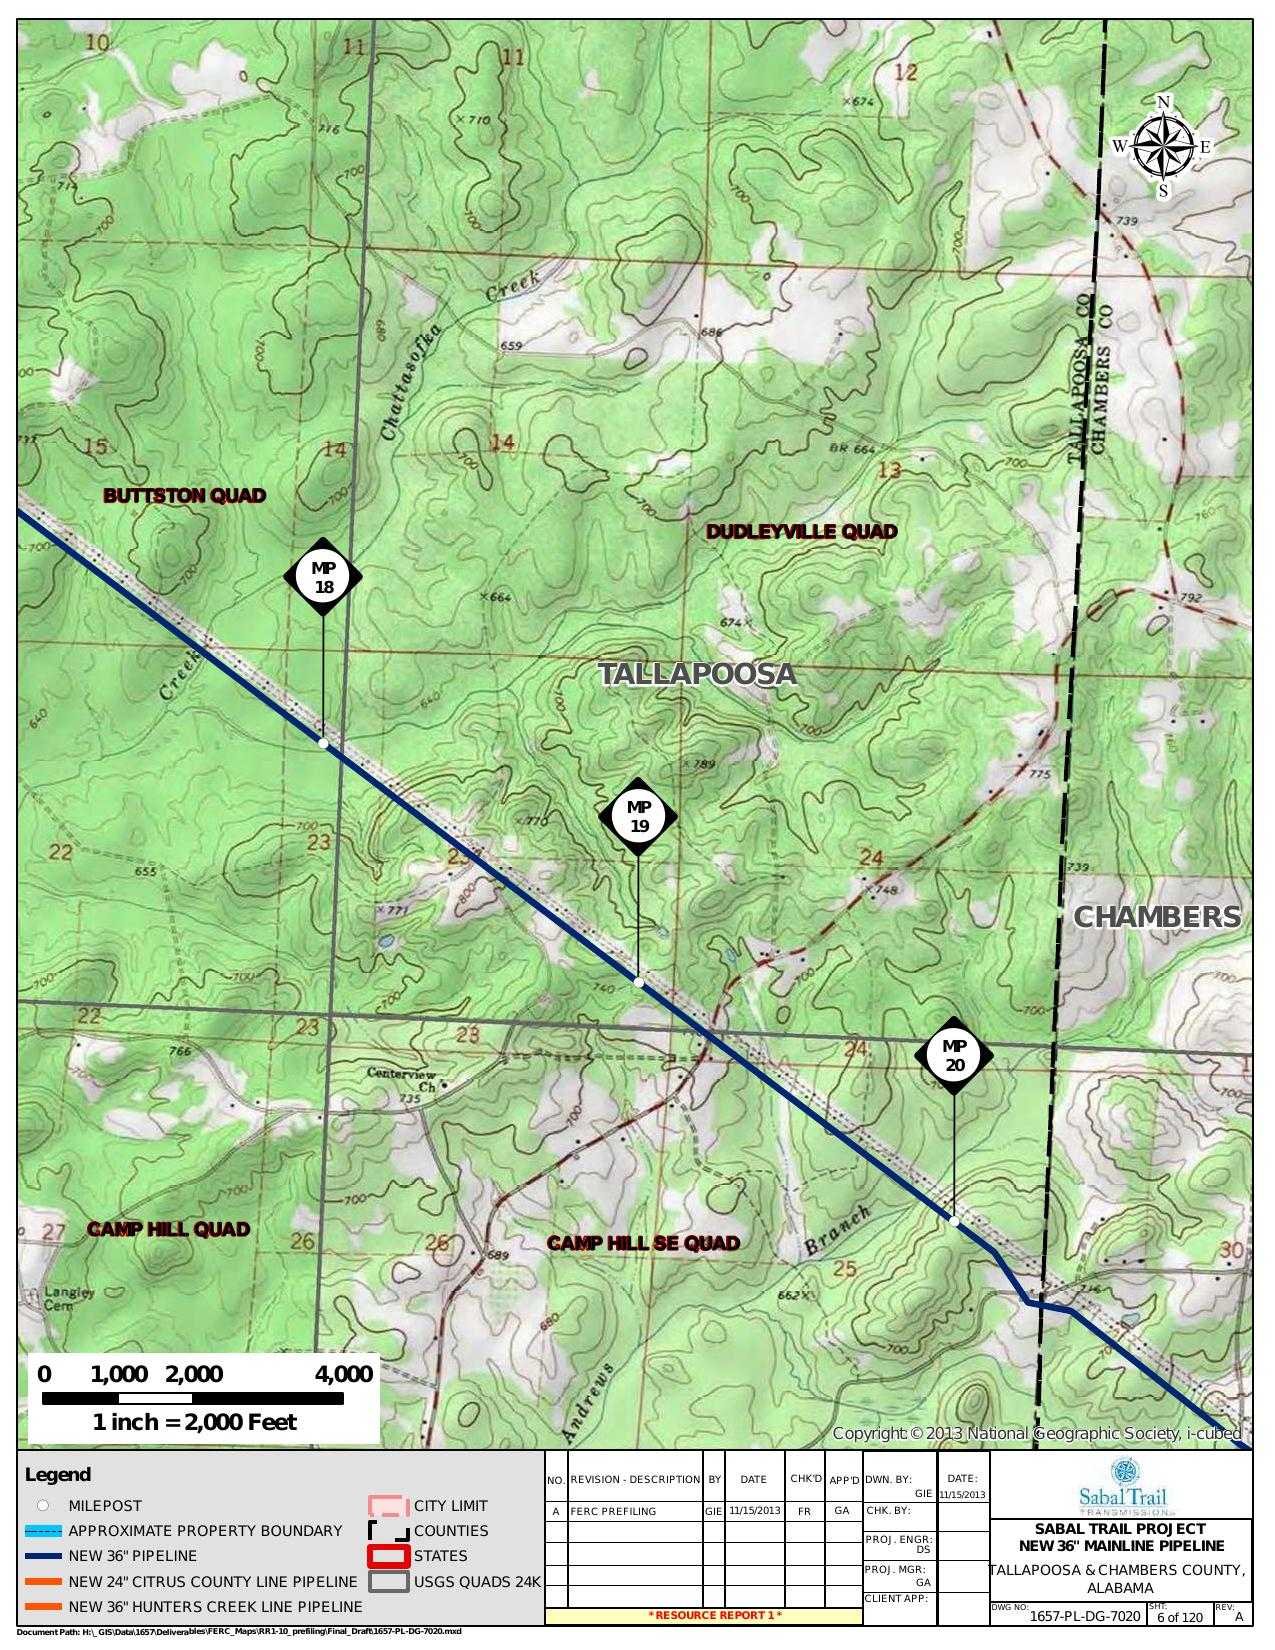 Chattasofka Creek, Dudleyville Quad, Tallapoosa and Chambers County, Alabama, in General Project Description, by SpectraBusters, for FERC Docket No. PF14-1-000, 15 November 2013, converted by SpectraBusters